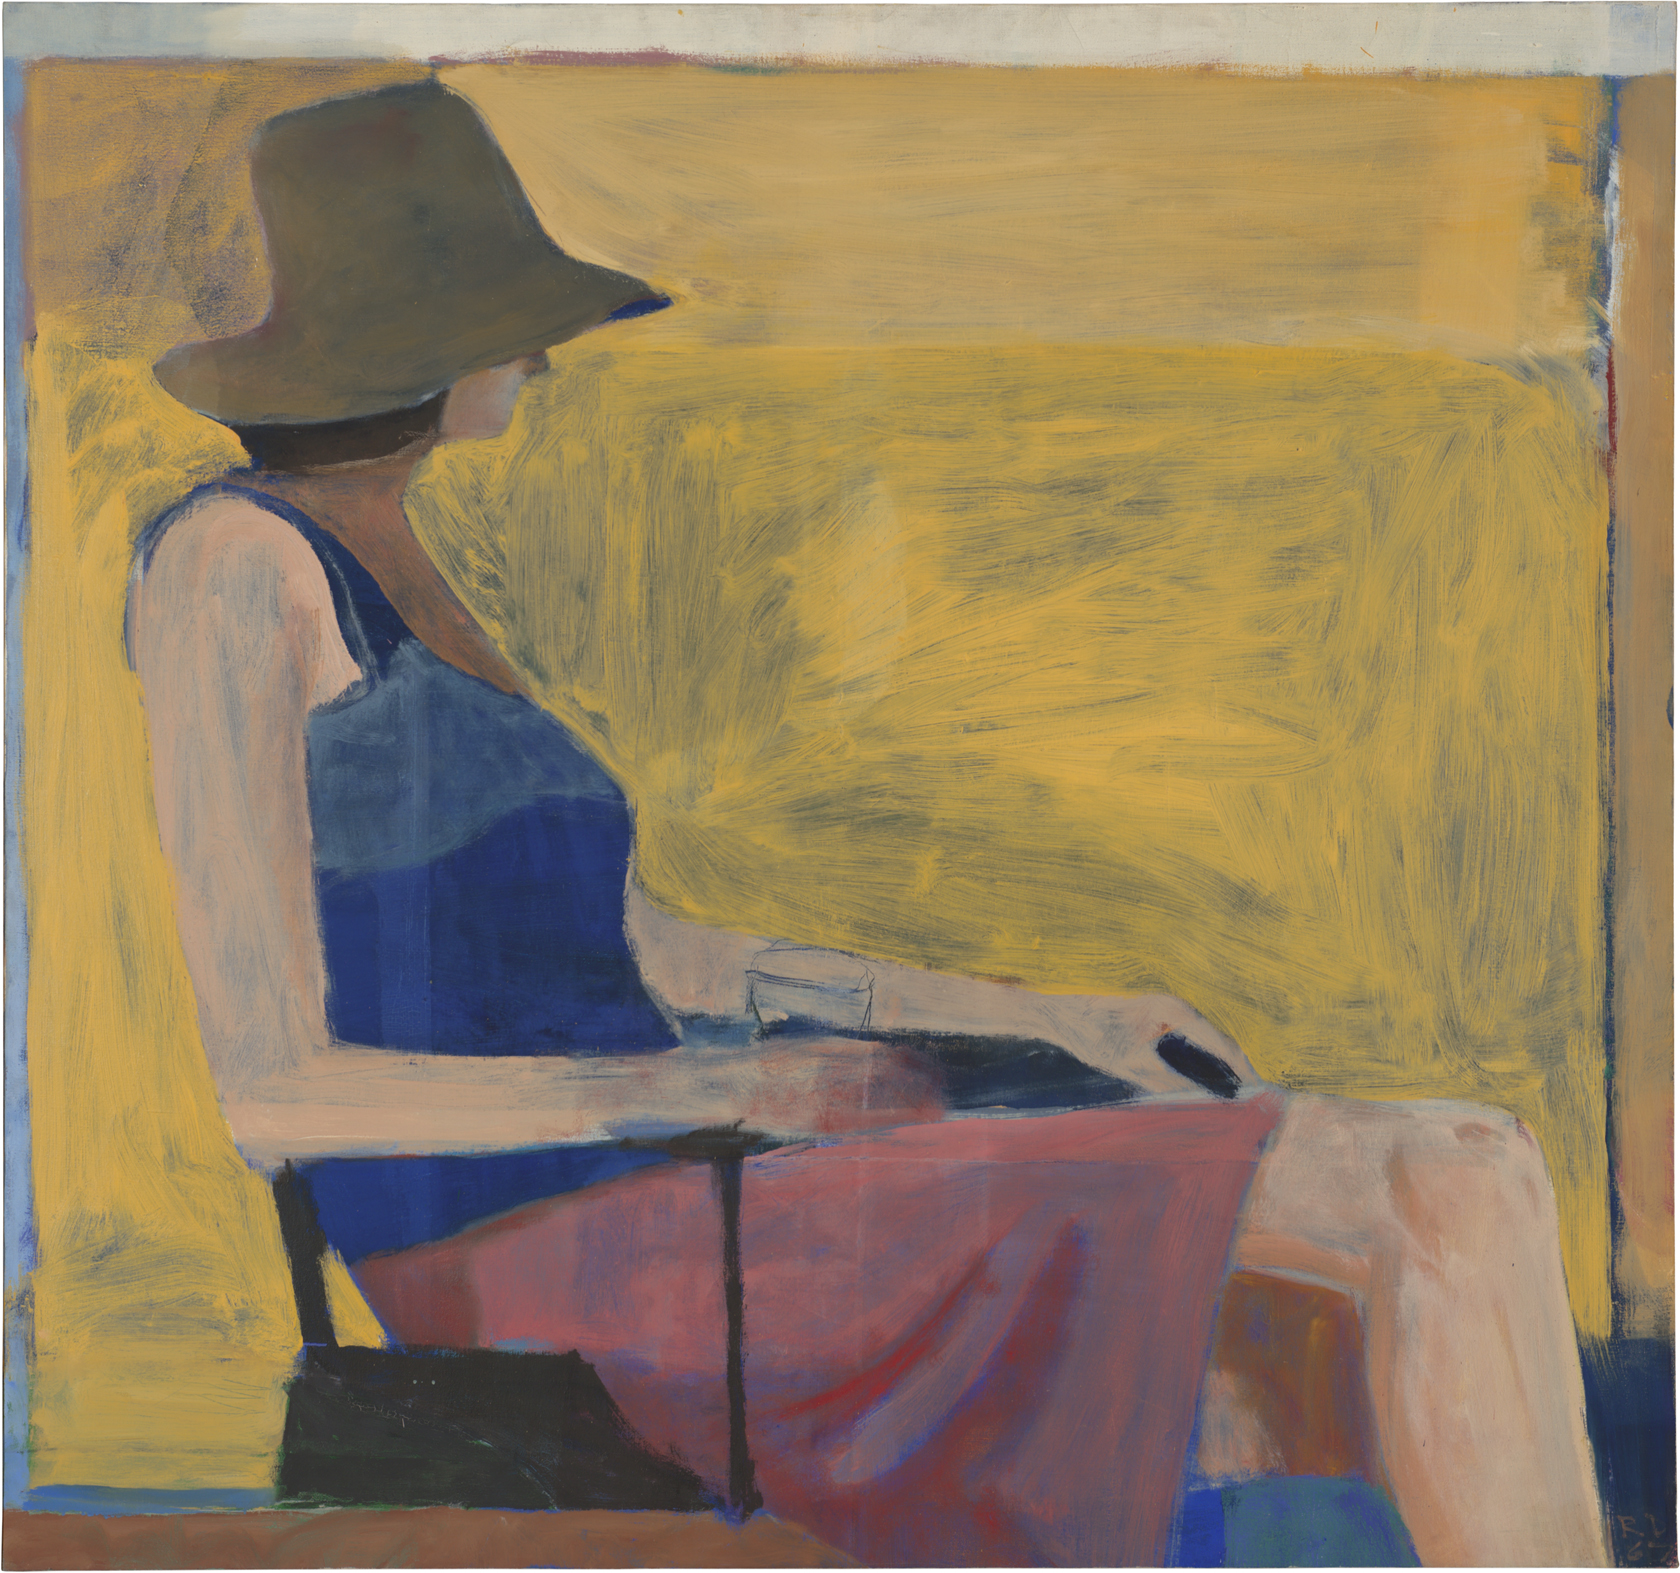 Richard  Diebenkorn, Seated  Figure with Hat,  1967; oil on canvas; National Gallery  of Art, Washington,D.C.,